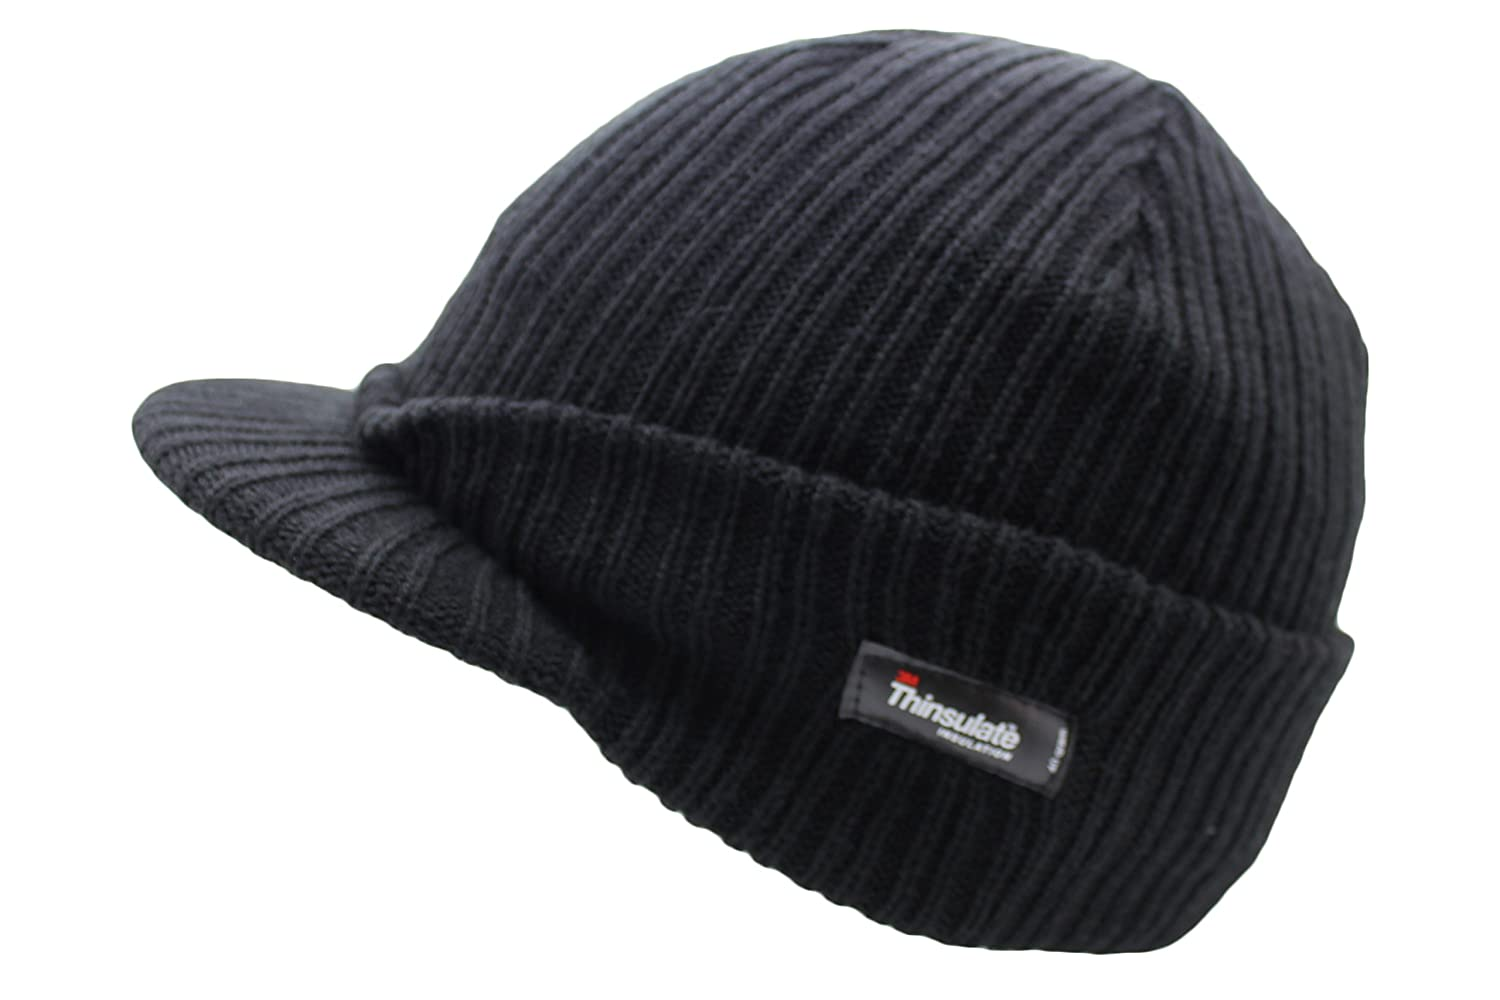 17fbd9c56ff Thinsulate Insulation Men s Peak Beanie Hat  Amazon.co.uk  Kitchen   Home